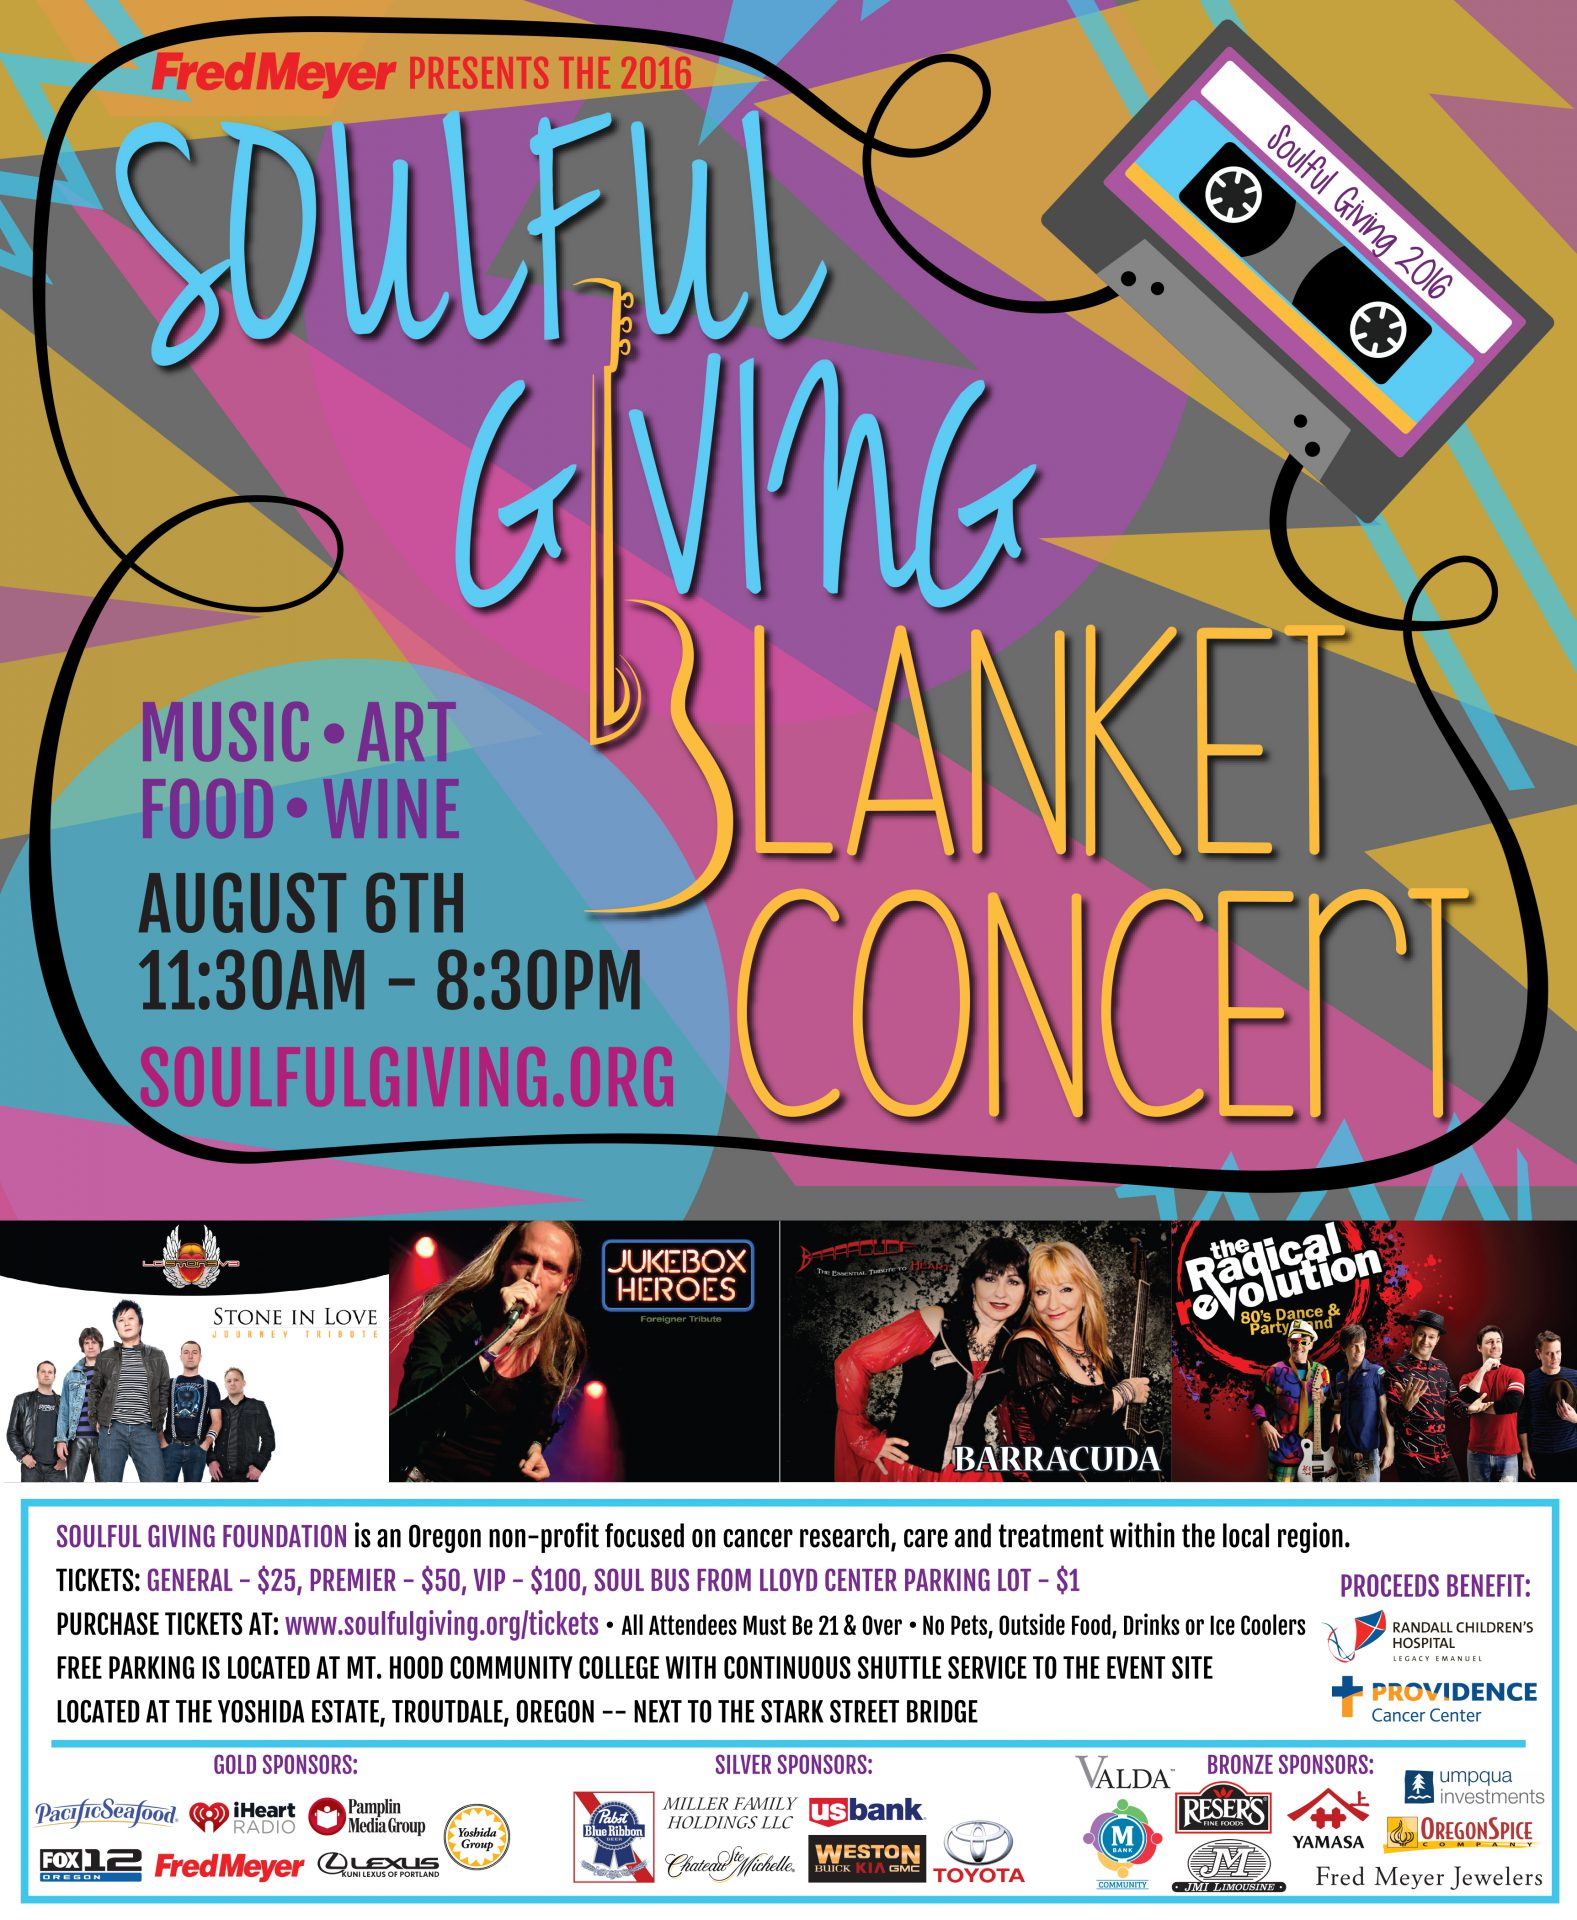 Soulful Giving Blanket Concert Poster 2016